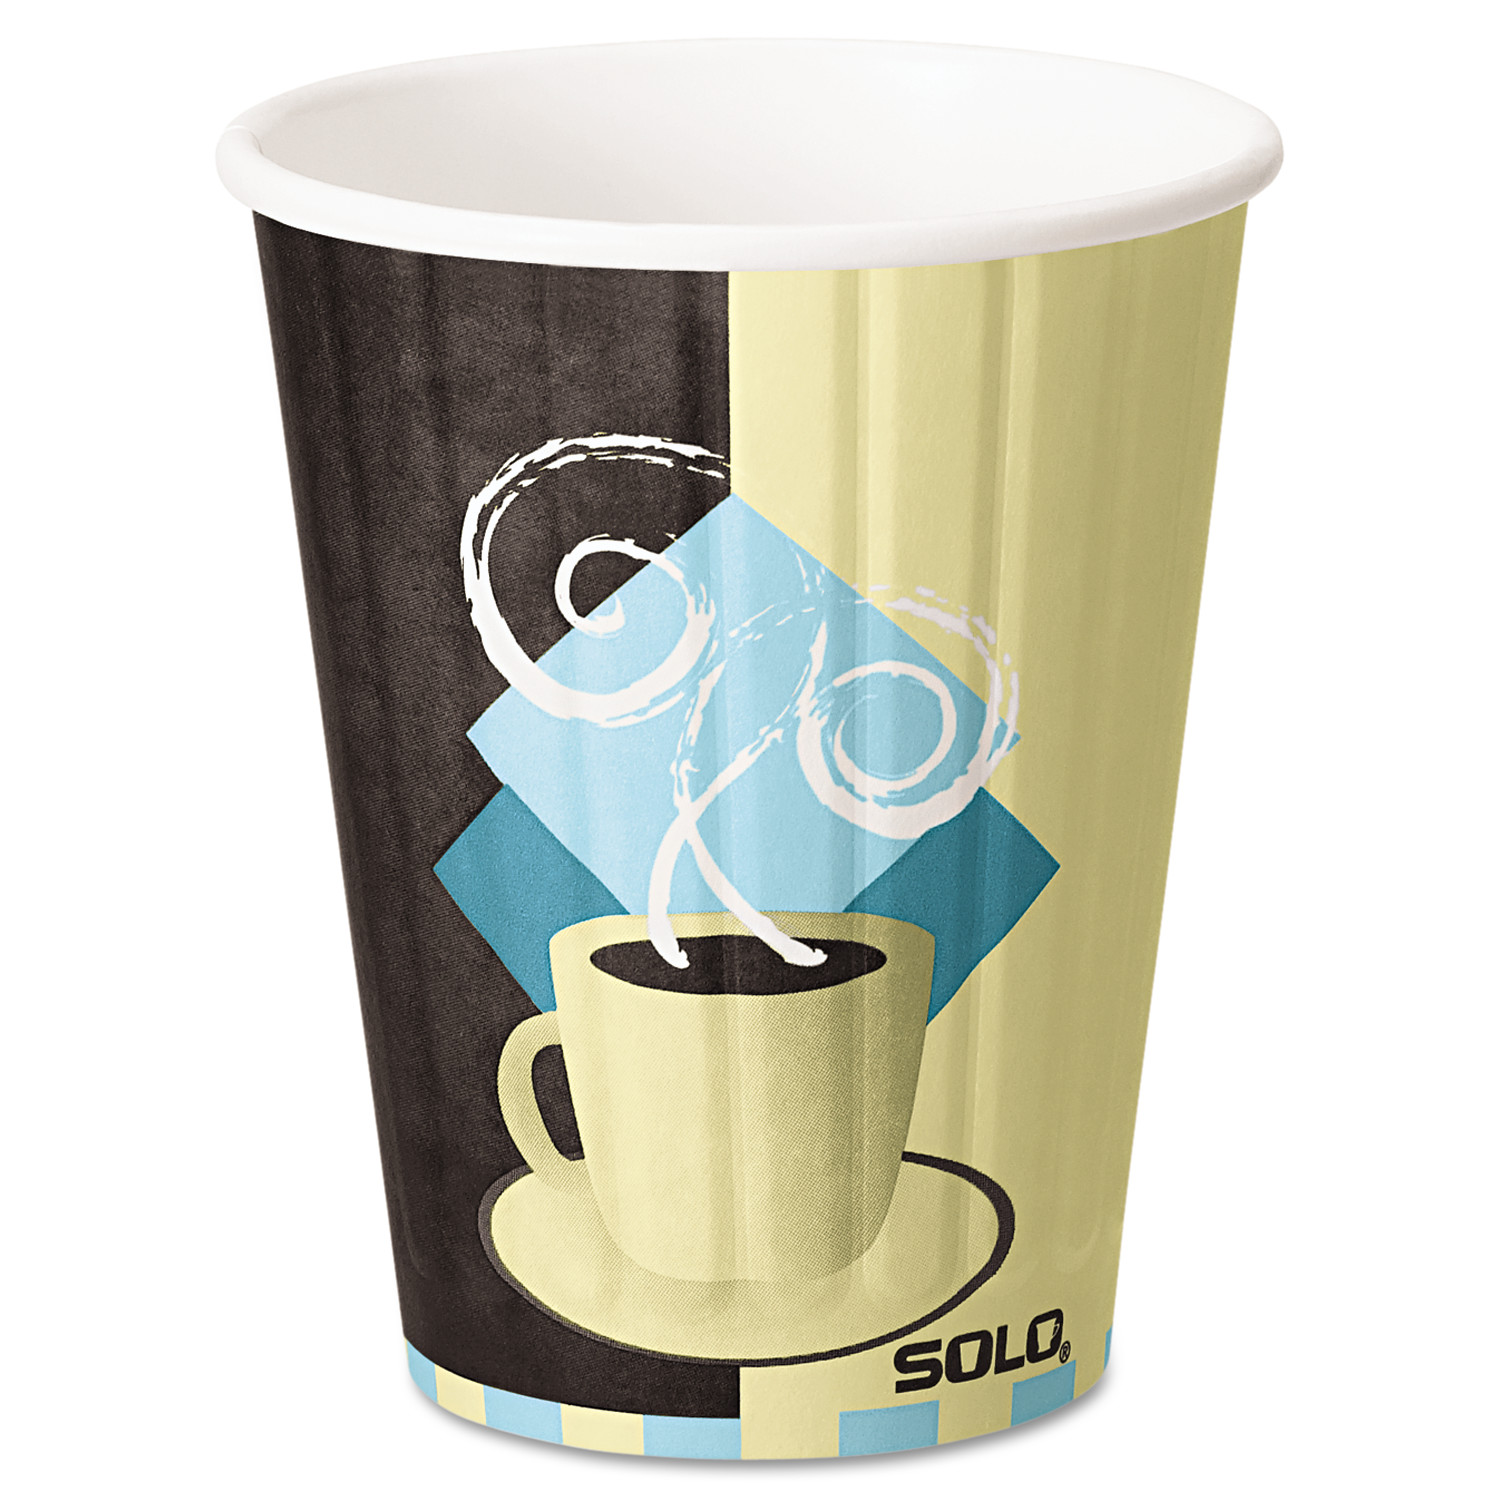 SOLO Cup Company Duo Shield Insulated Paper Hot Cups, 12oz, Tuscan, Chocolate/Blue/Beige, 600/Ct